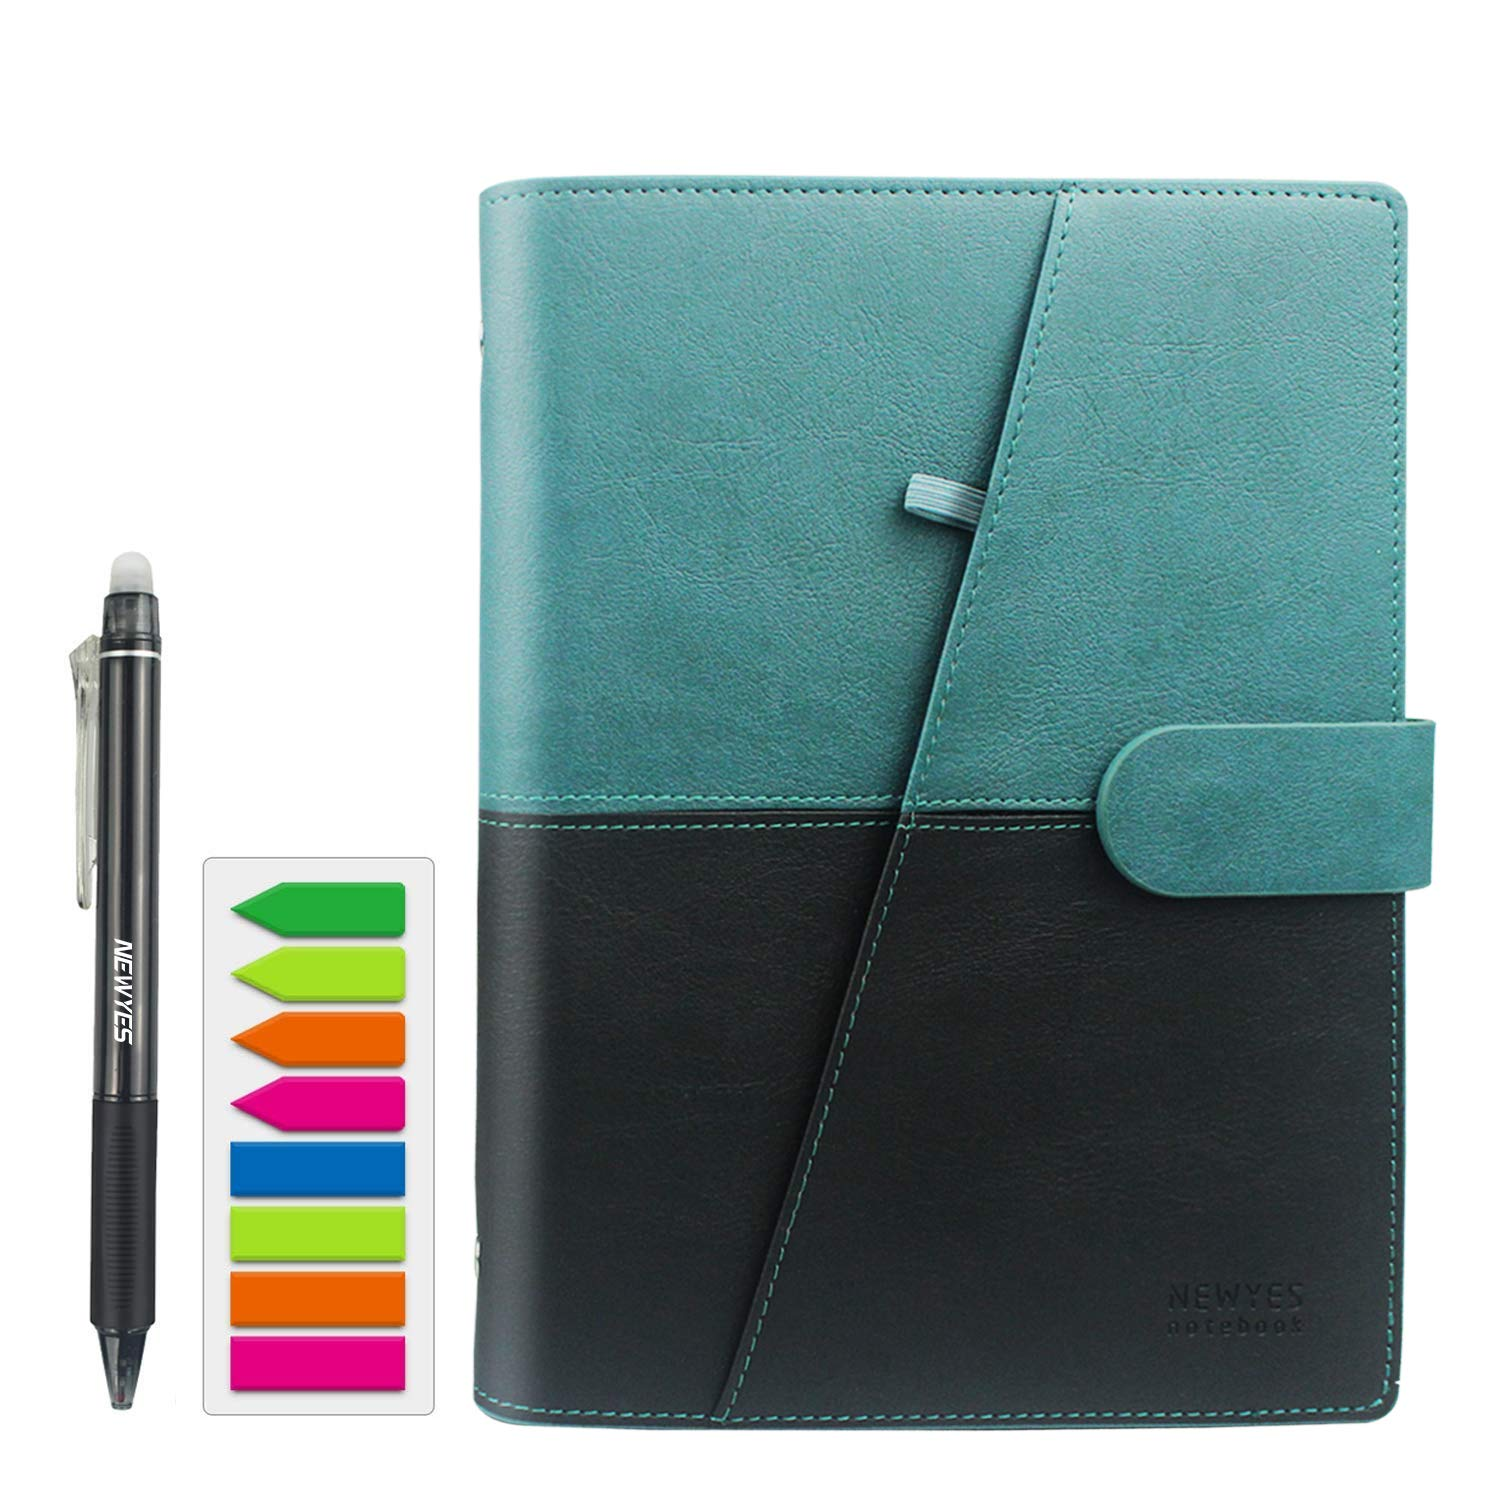 NEWYES Erasable Reusable Smart Notebook PU Leather Hardcover Sketch Pads APP Storage A5 Size 100 pages (Black & Green) by NEWYES